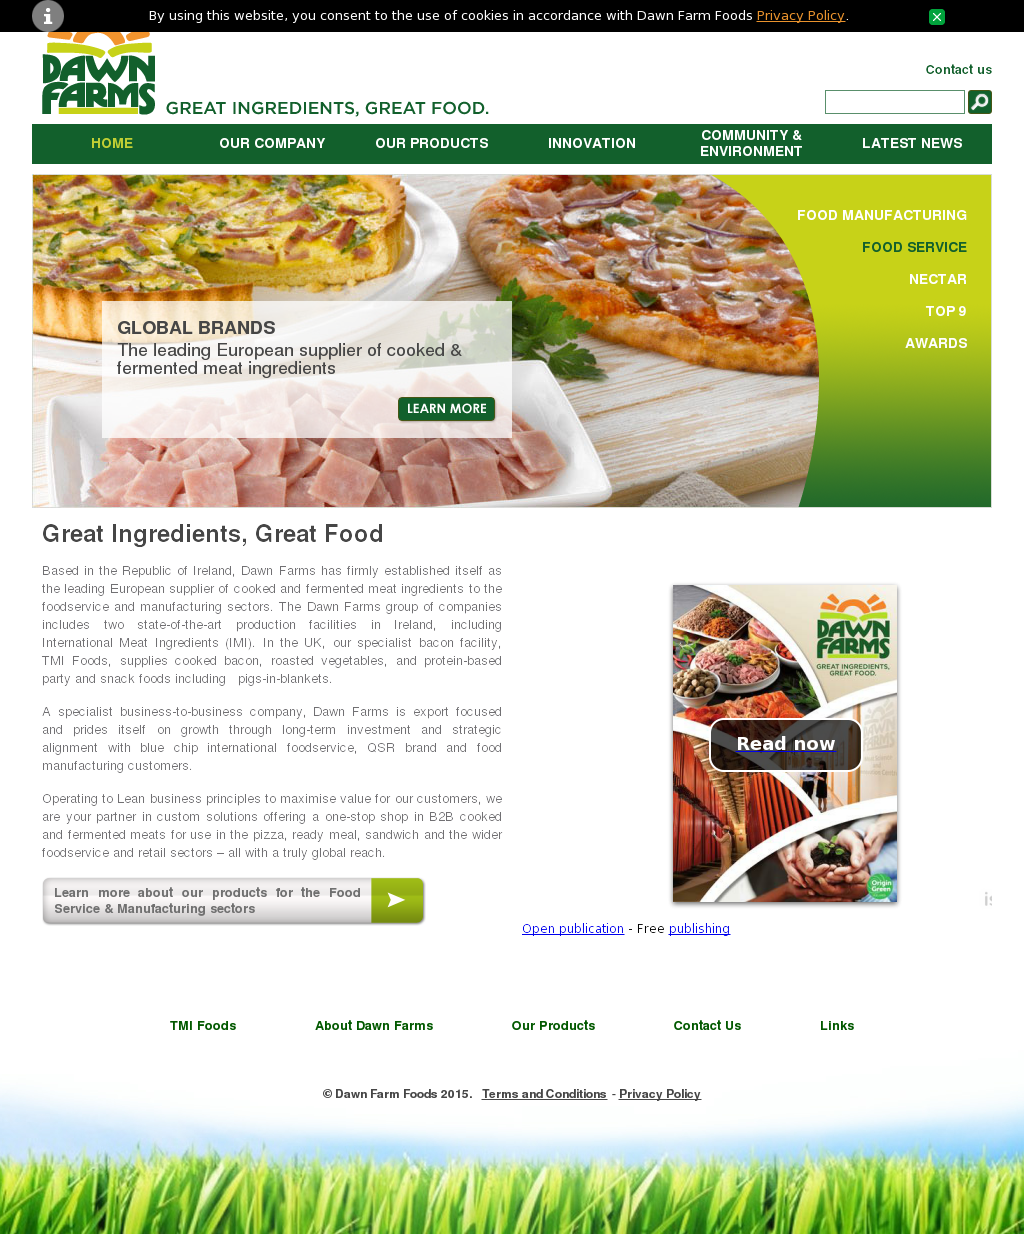 Dawn Farm Foods Competitors, Revenue and Employees - Owler